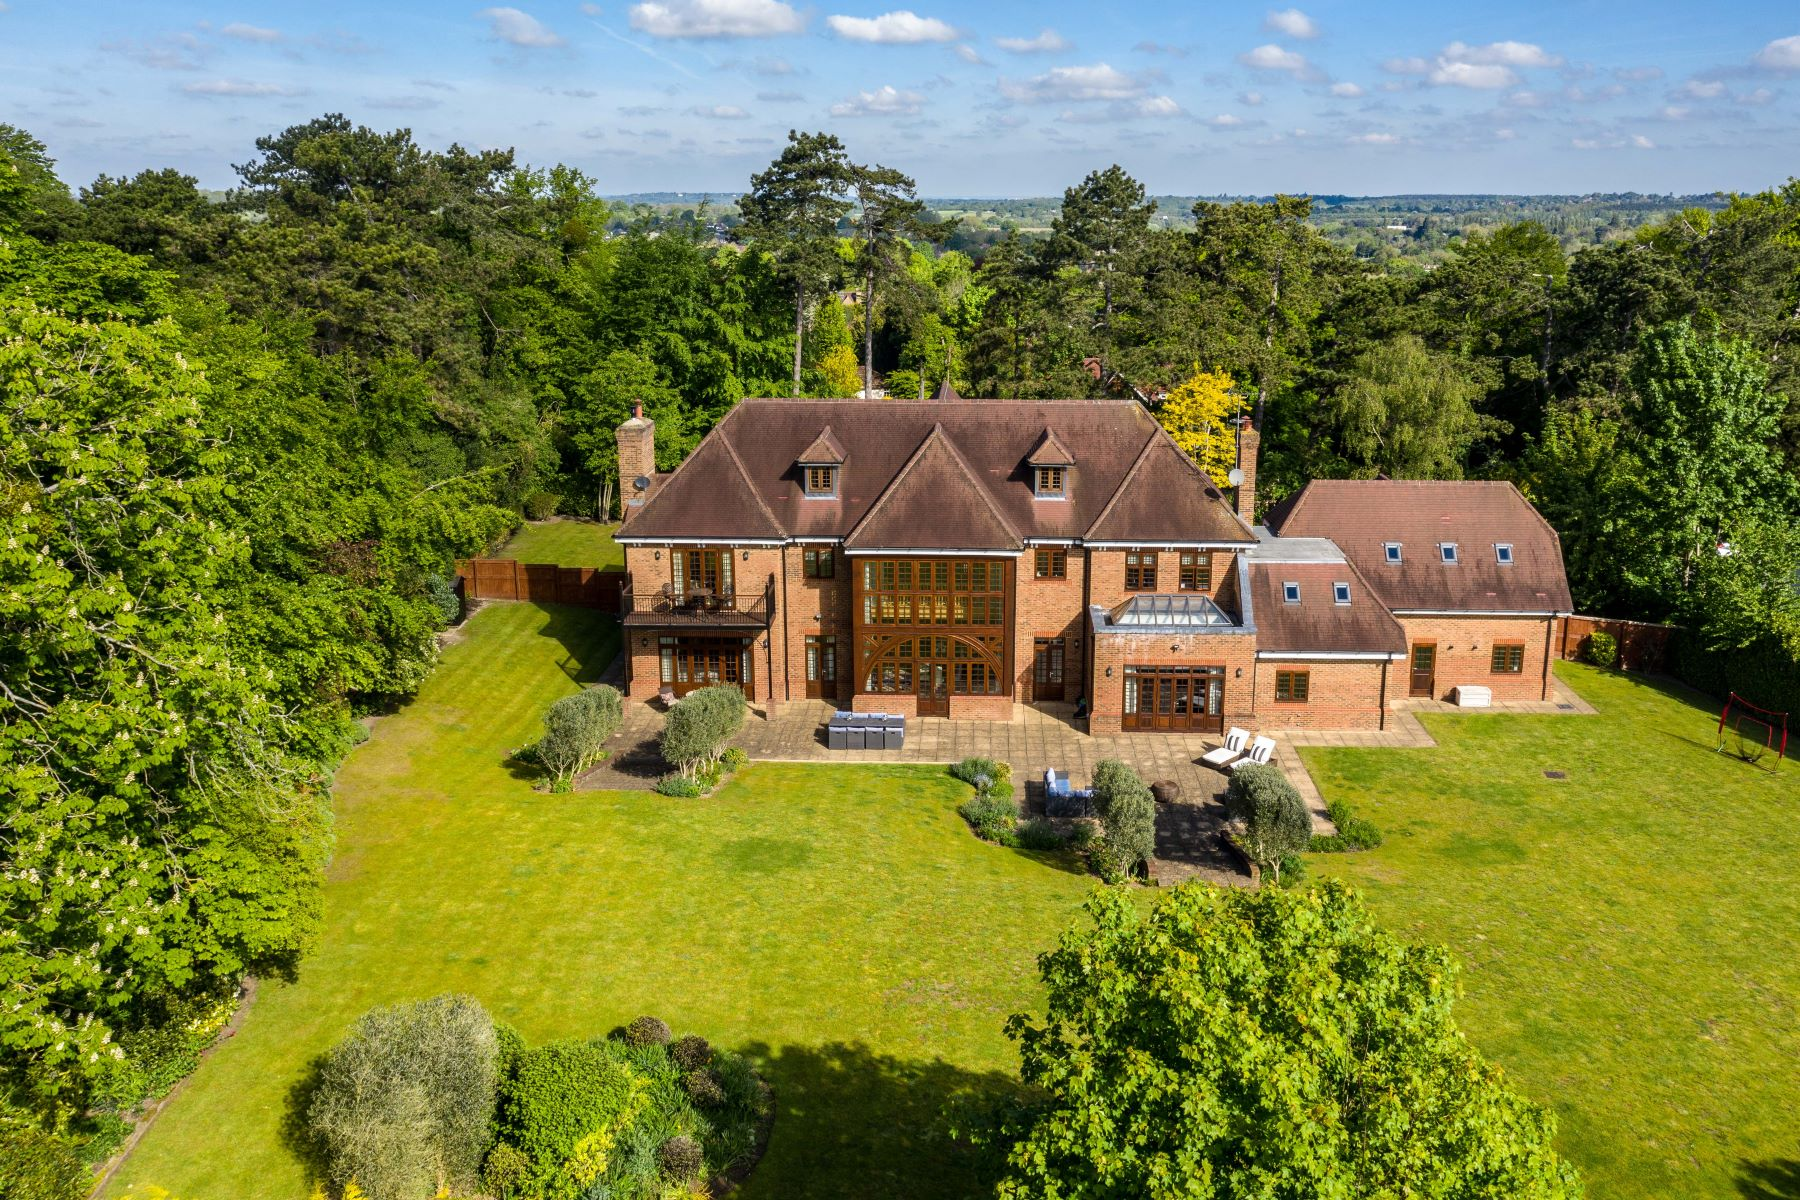 Single Family Homes for Sale at Marchwood House Guildford Road Fetcham, England KT22 9DS United Kingdom